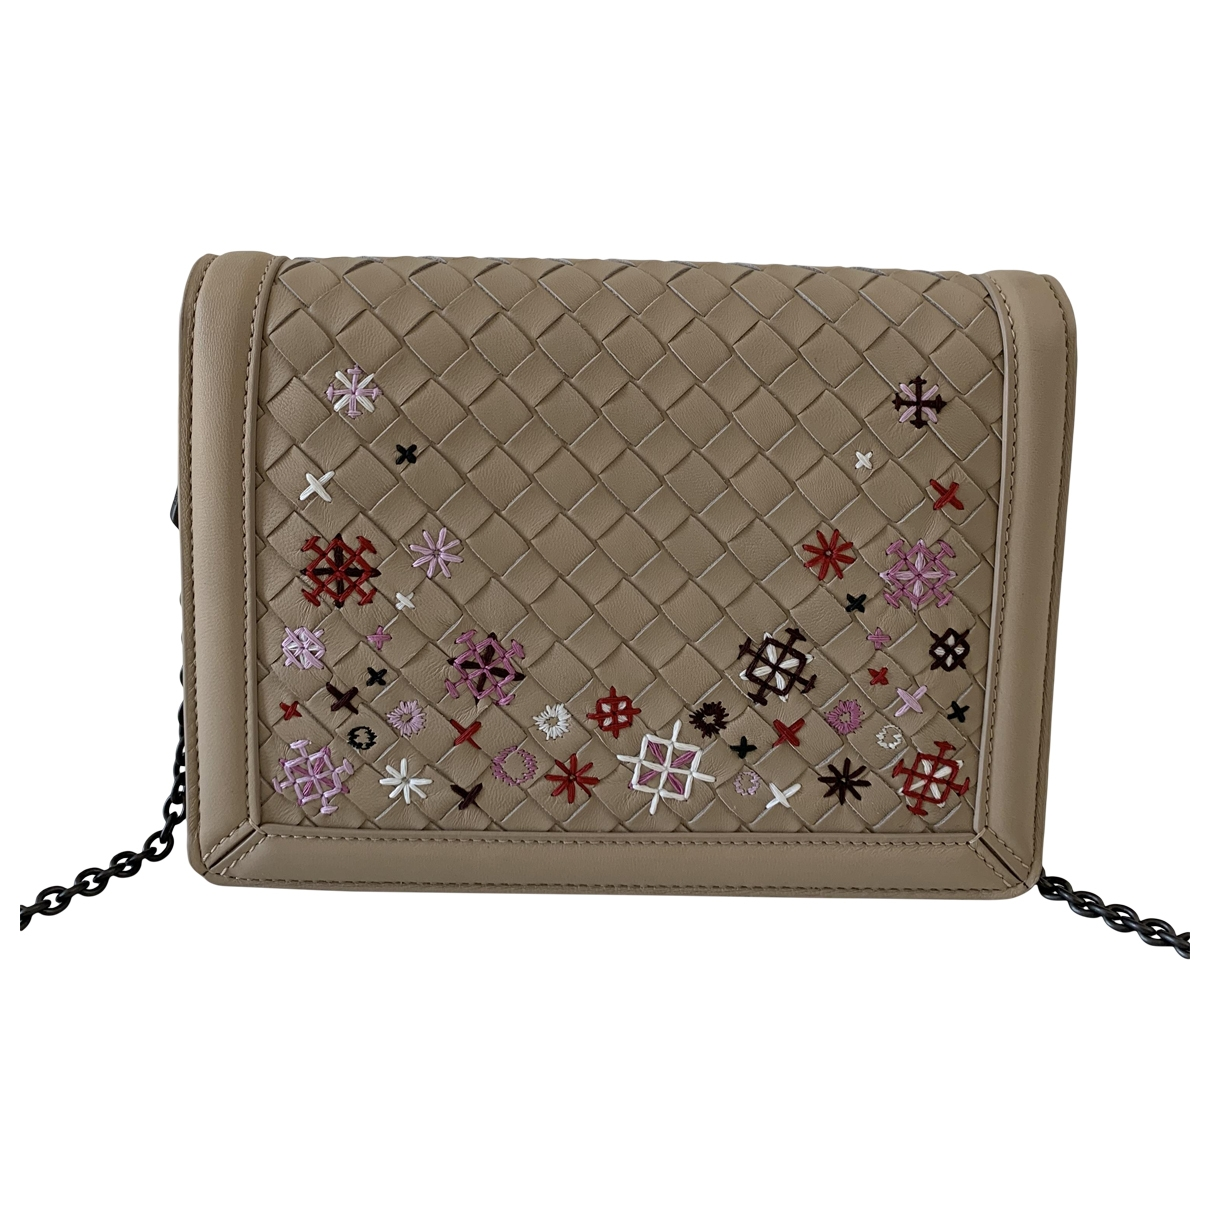 Bottega Veneta \N Clutch in  Beige Leder